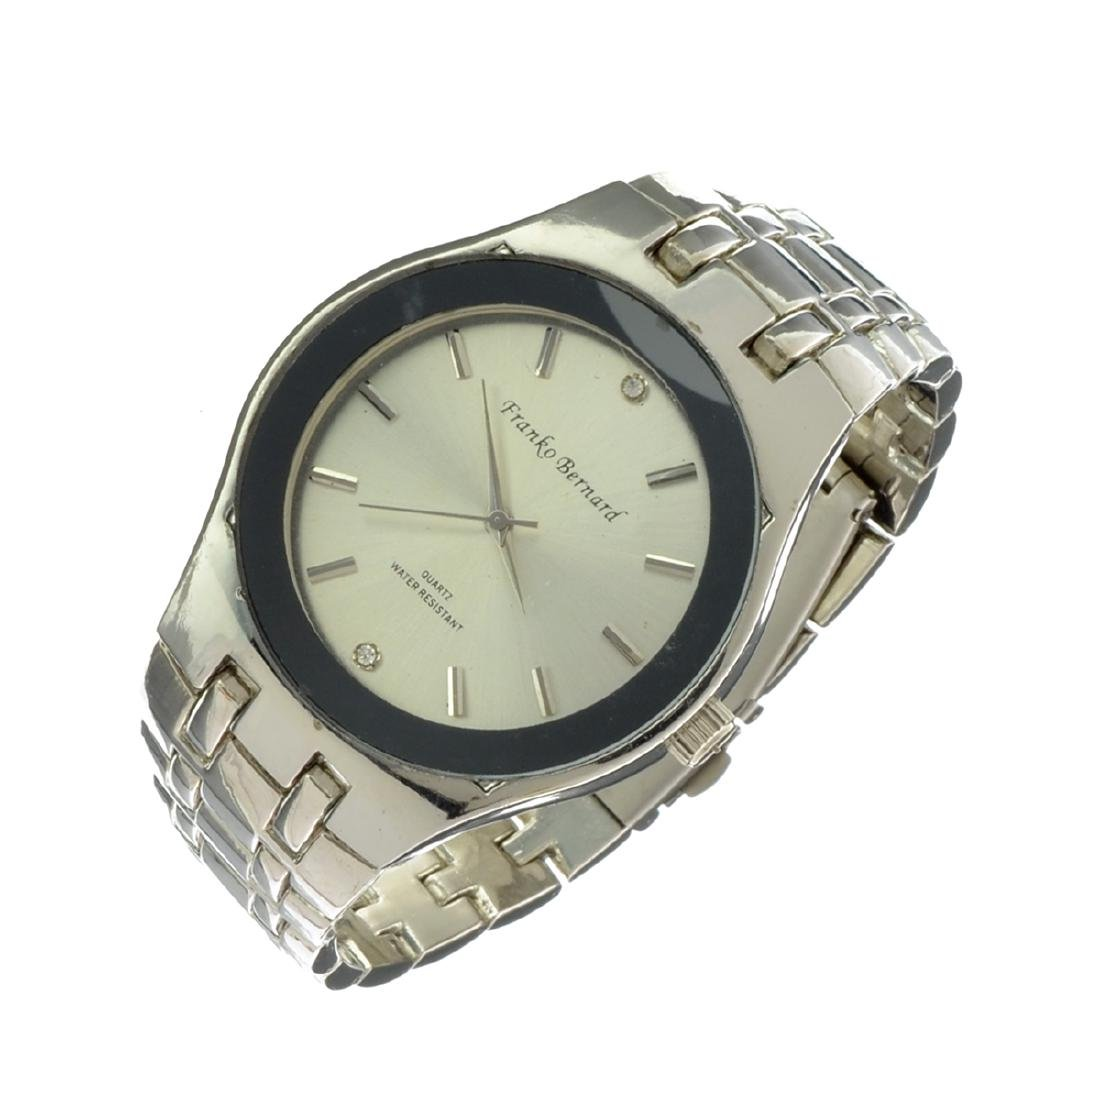 New Mens Franko Bernard Designer Watch